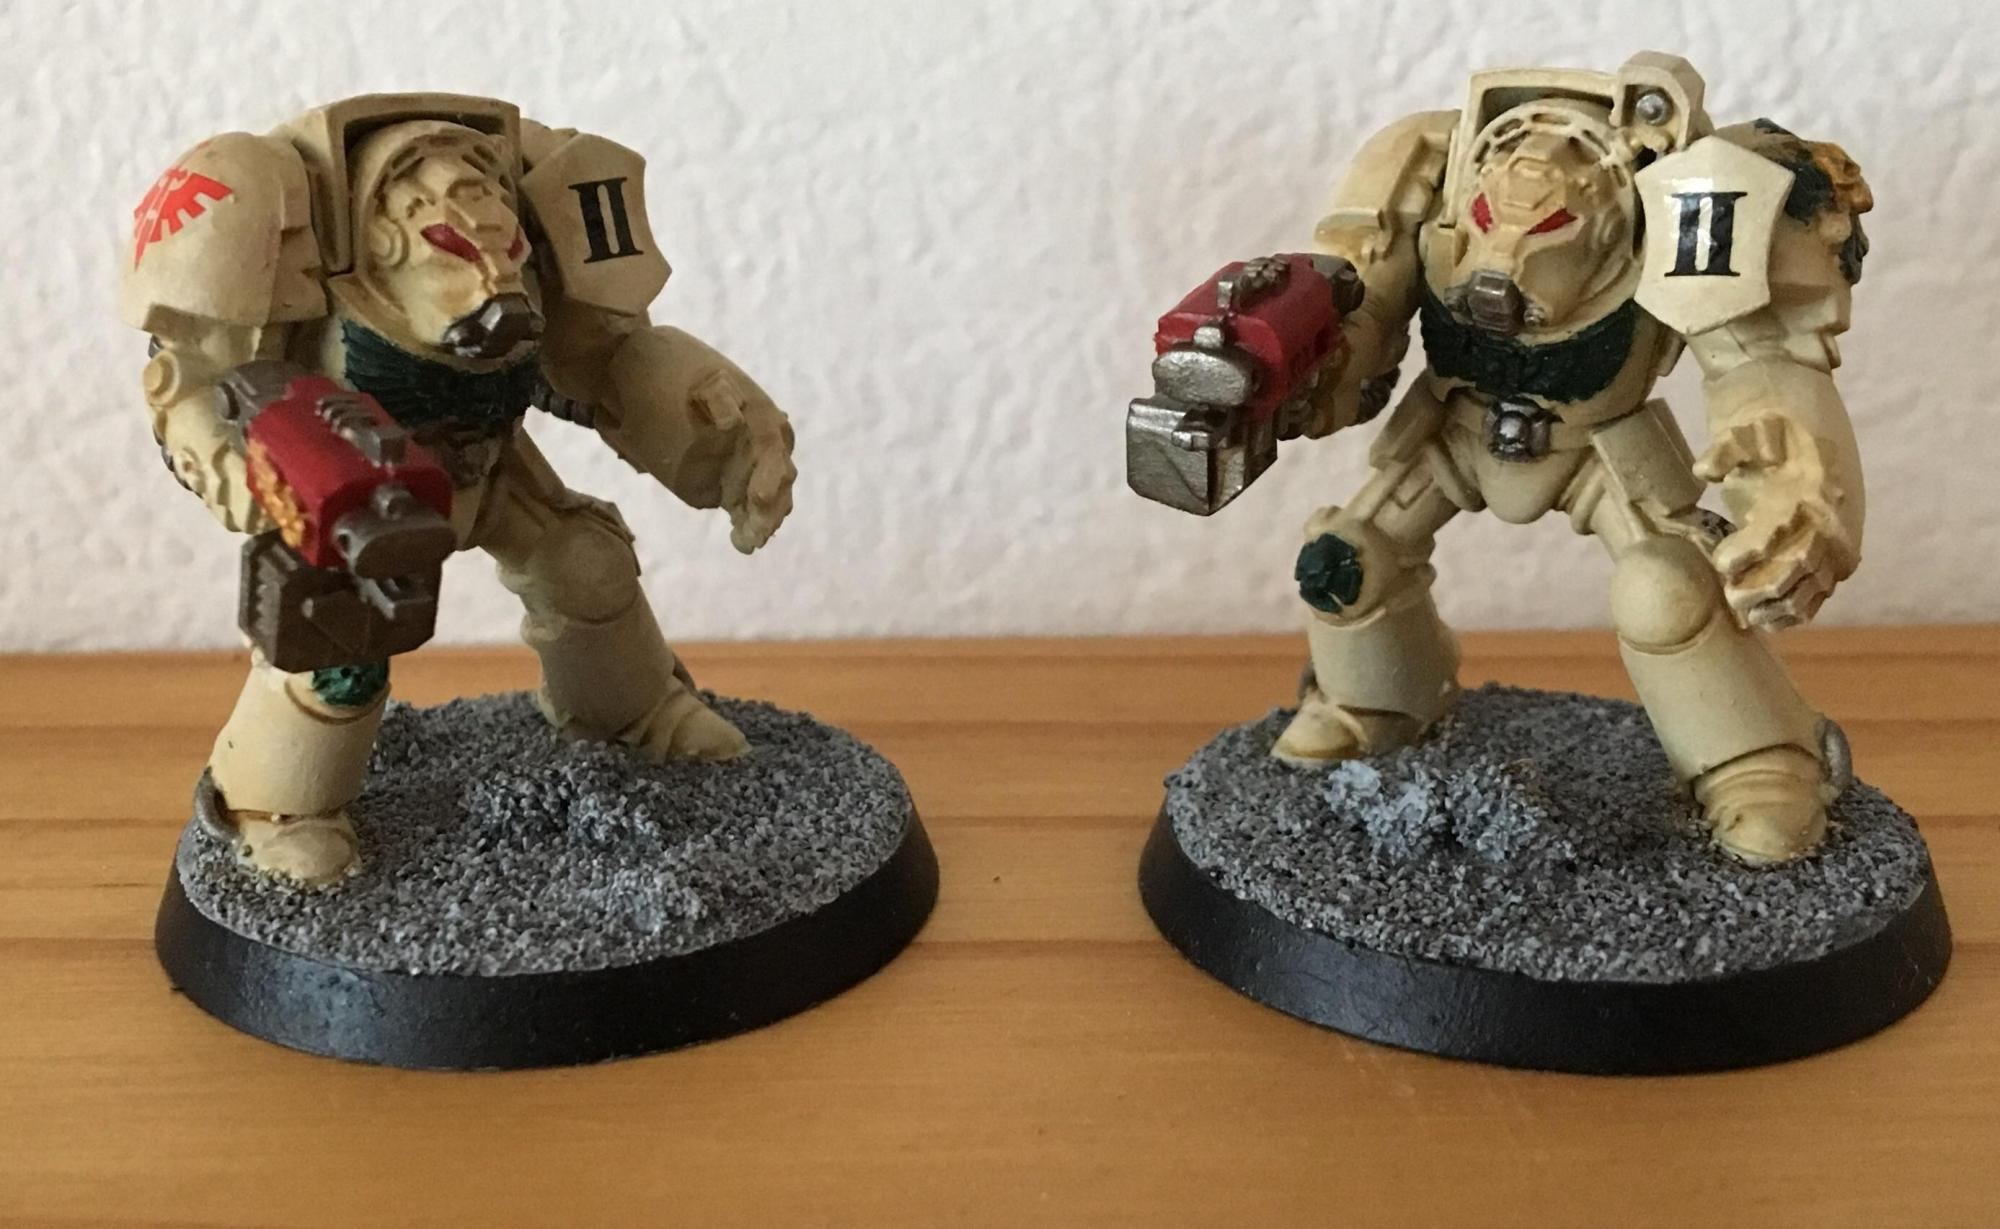 hight resolution of some deathwing done from the battle for macragge starter set not my best models ever but said i d post them in here for some one tried doing some writing